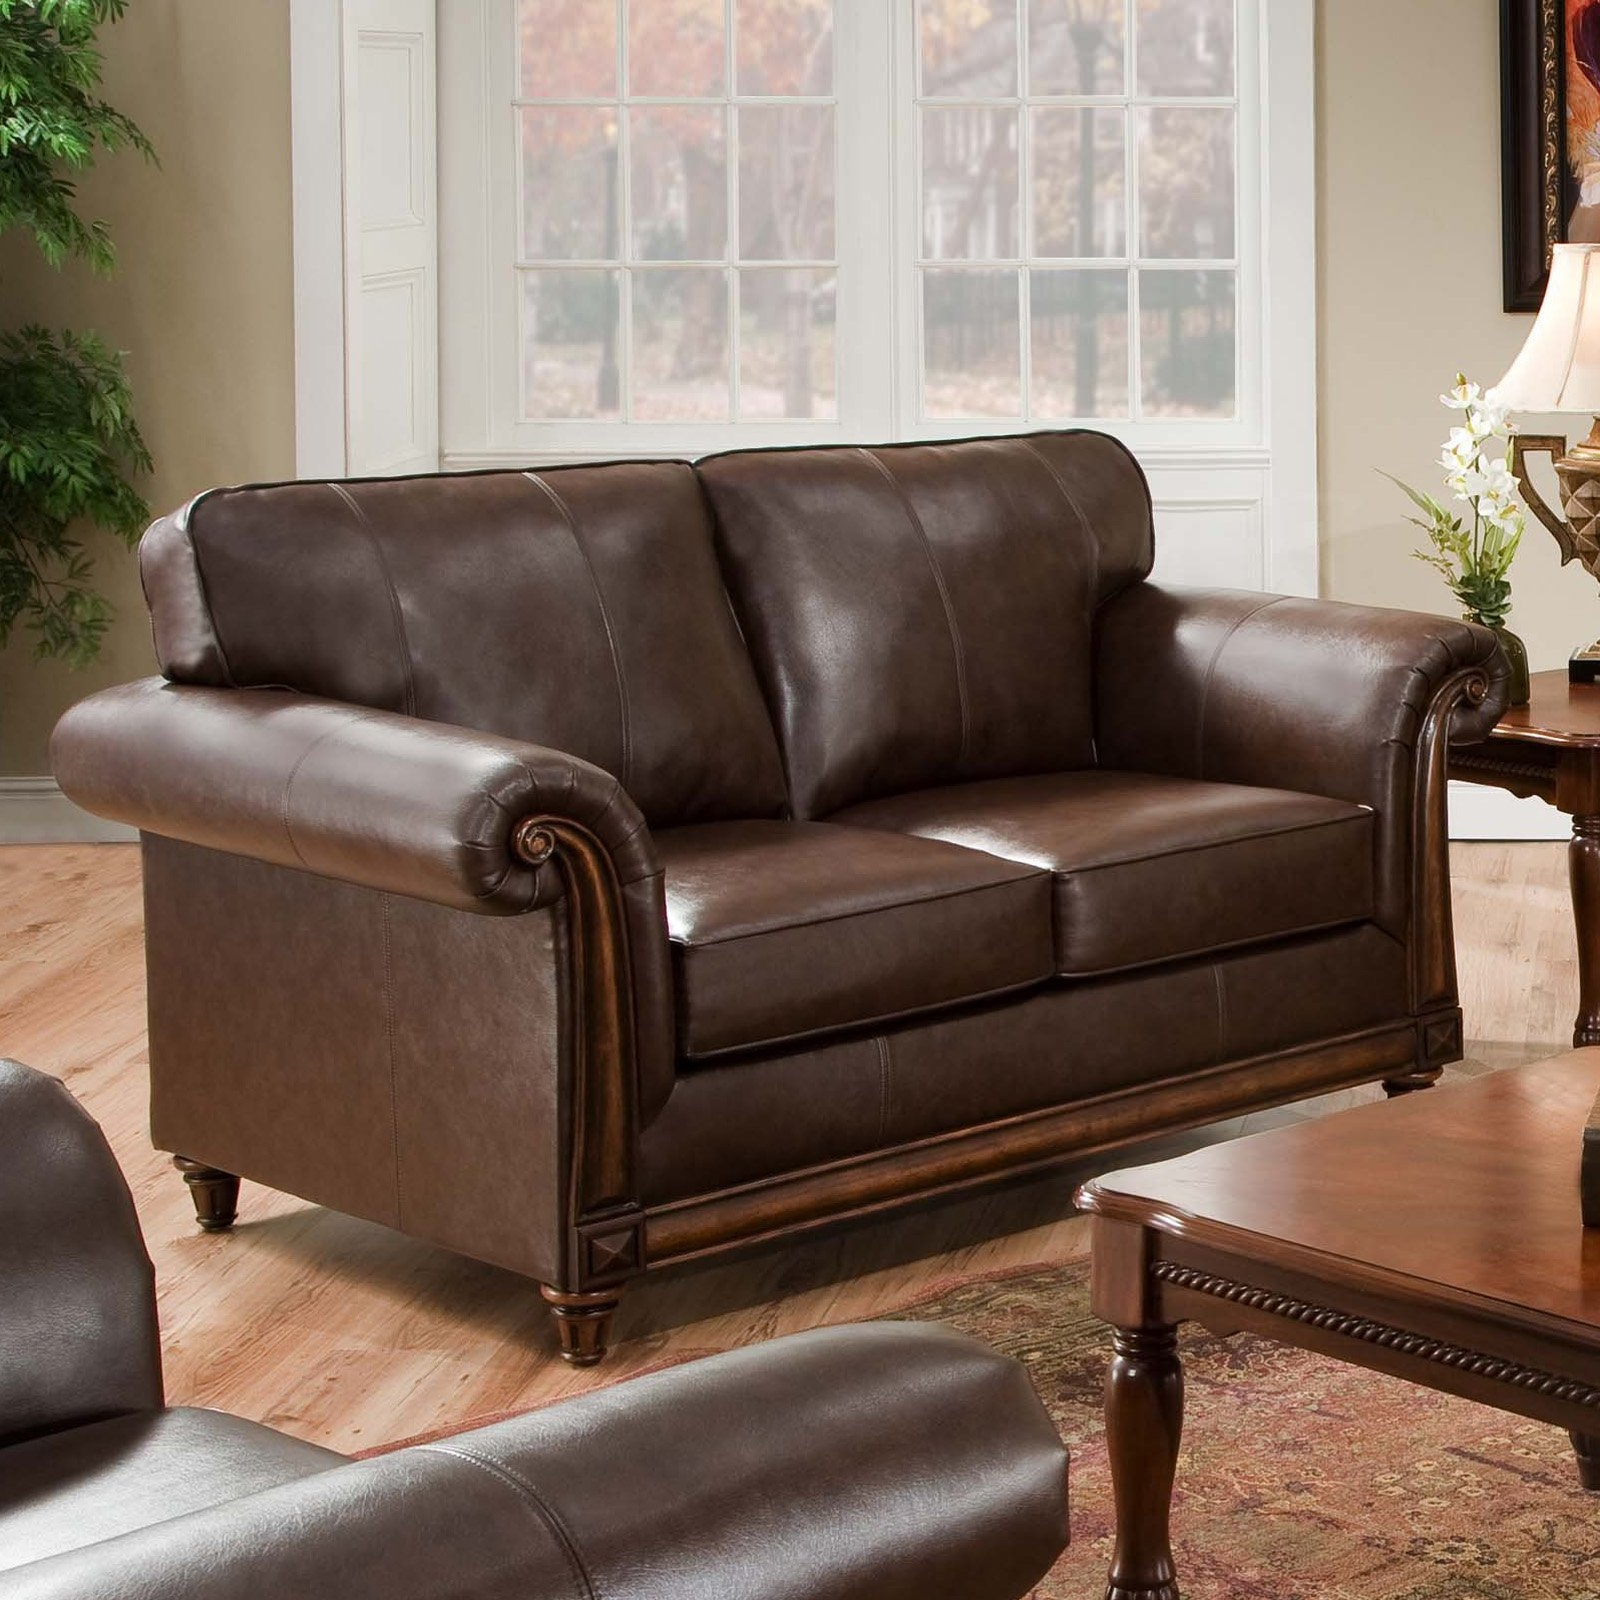 Merveilleux Simmons Leather Sofa And Loveseat 2